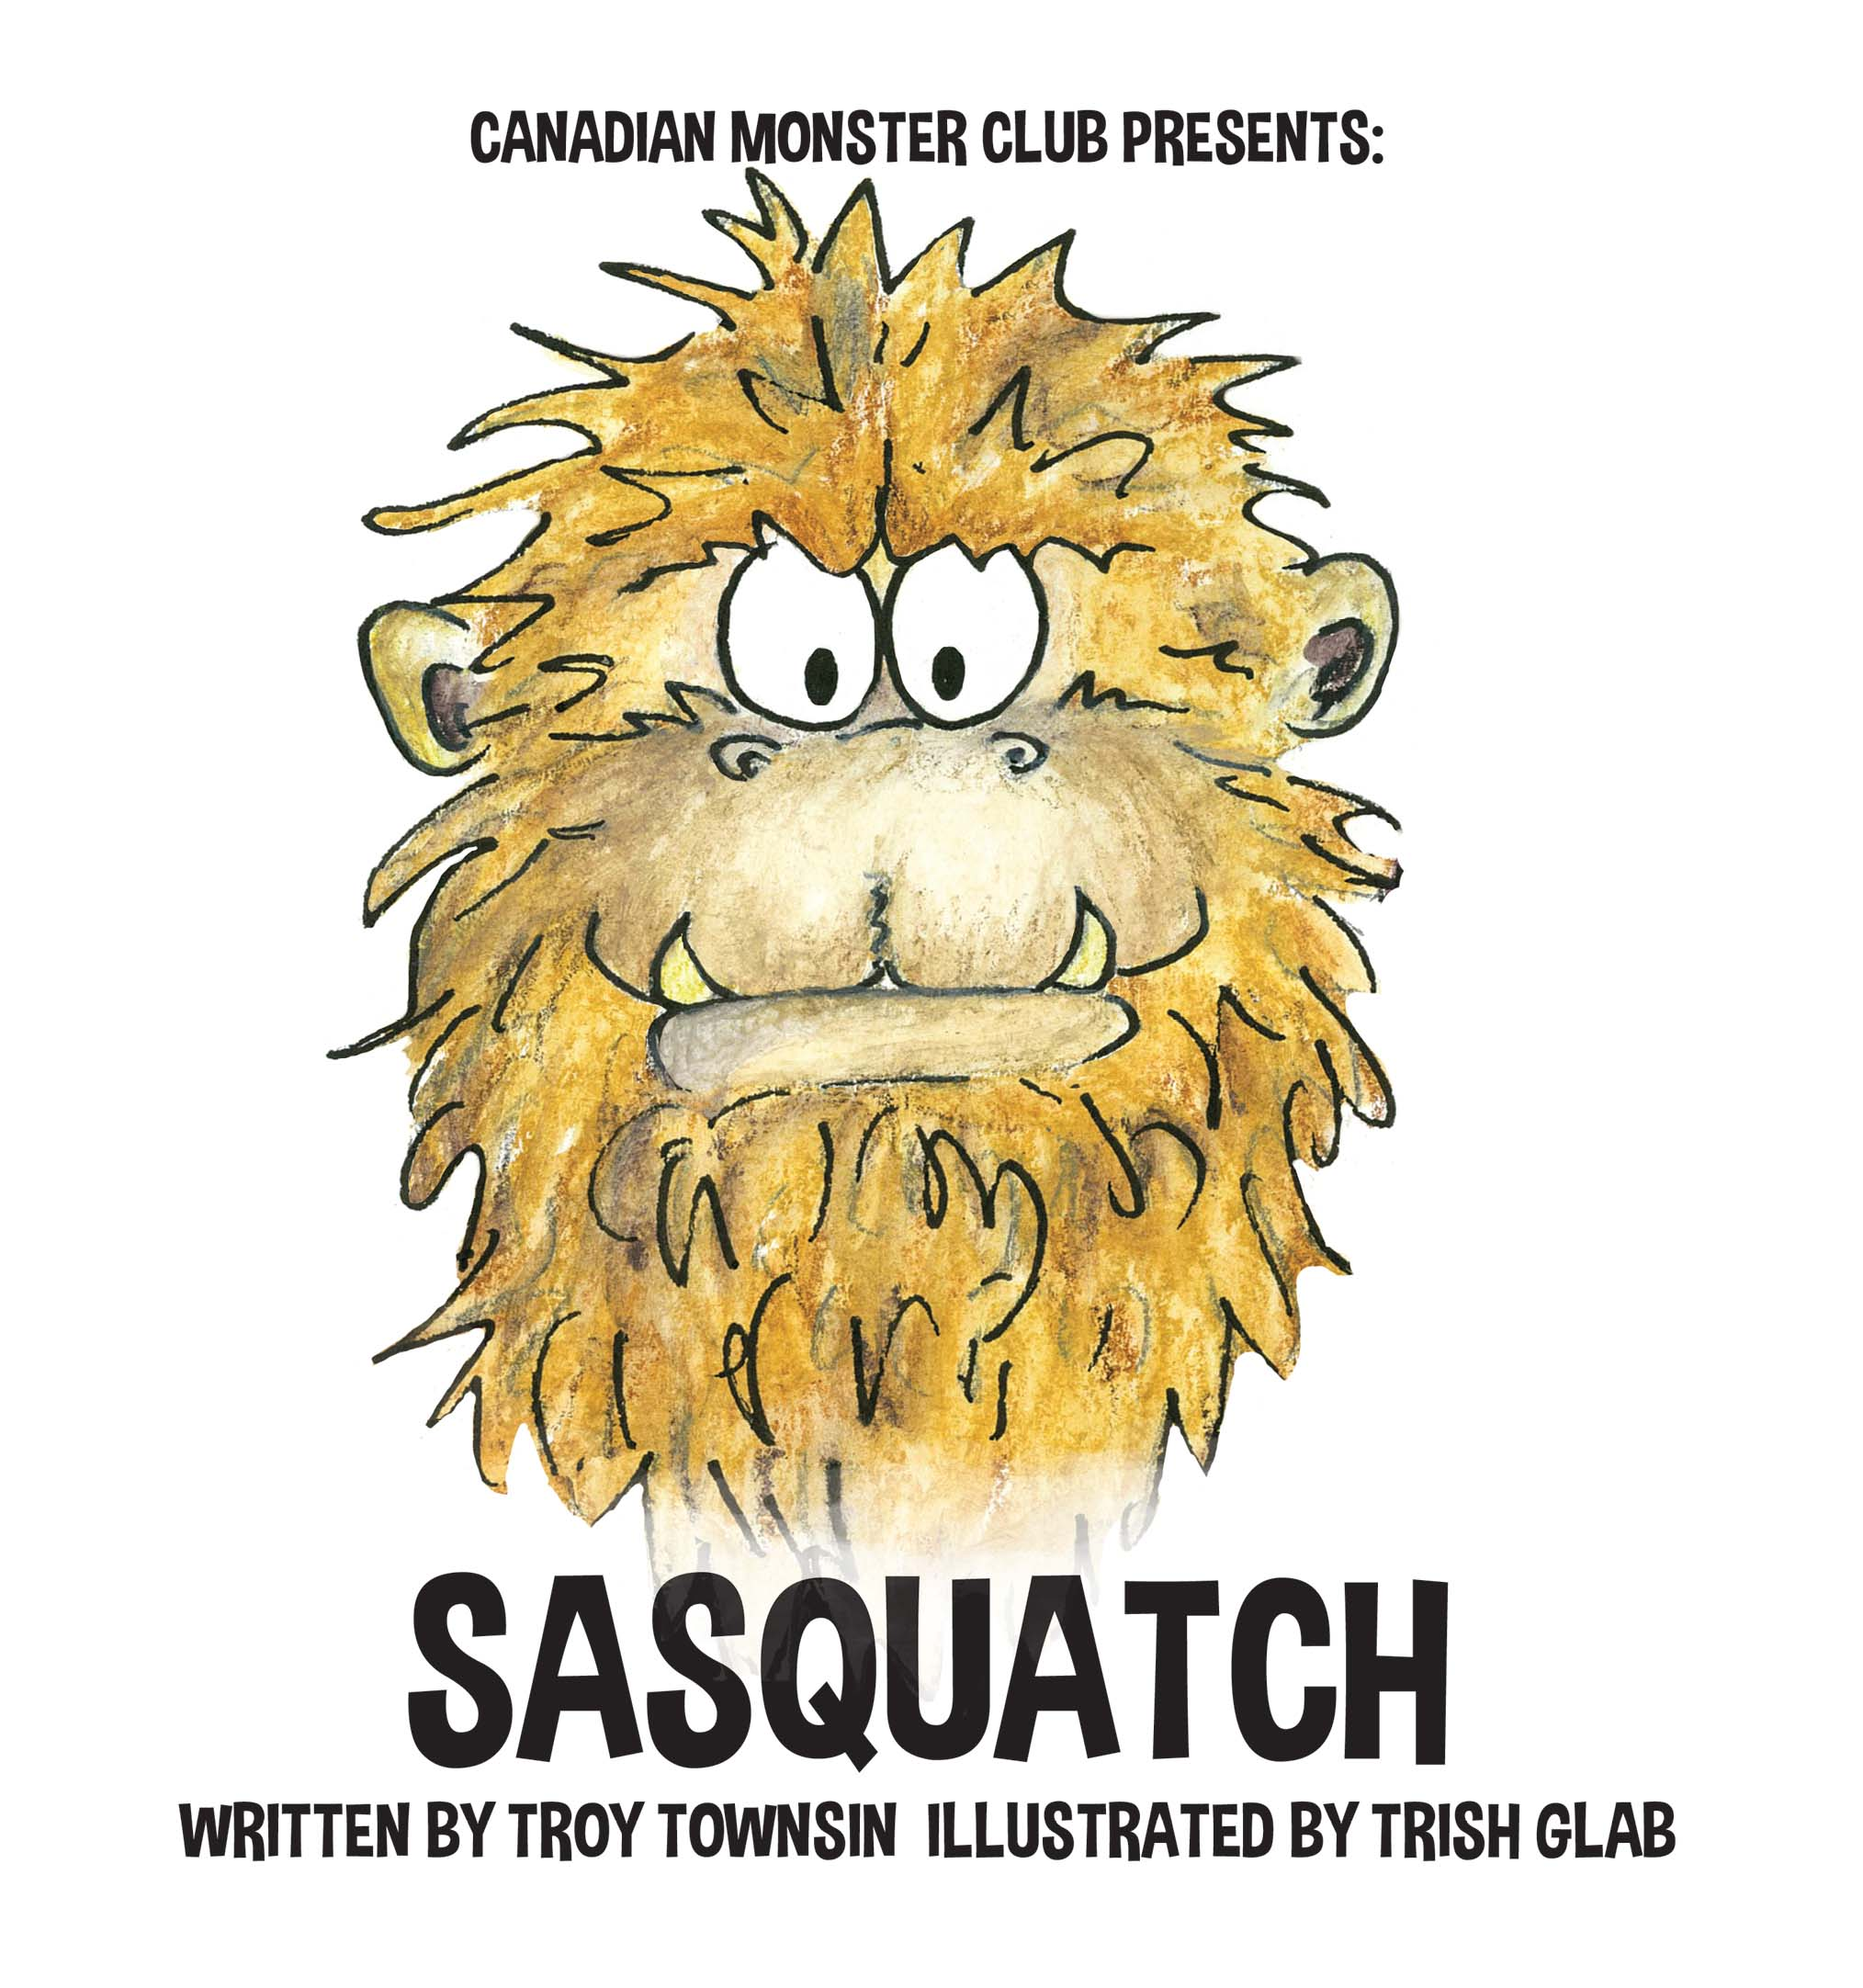 sasquatch-cover-low-res.jpg